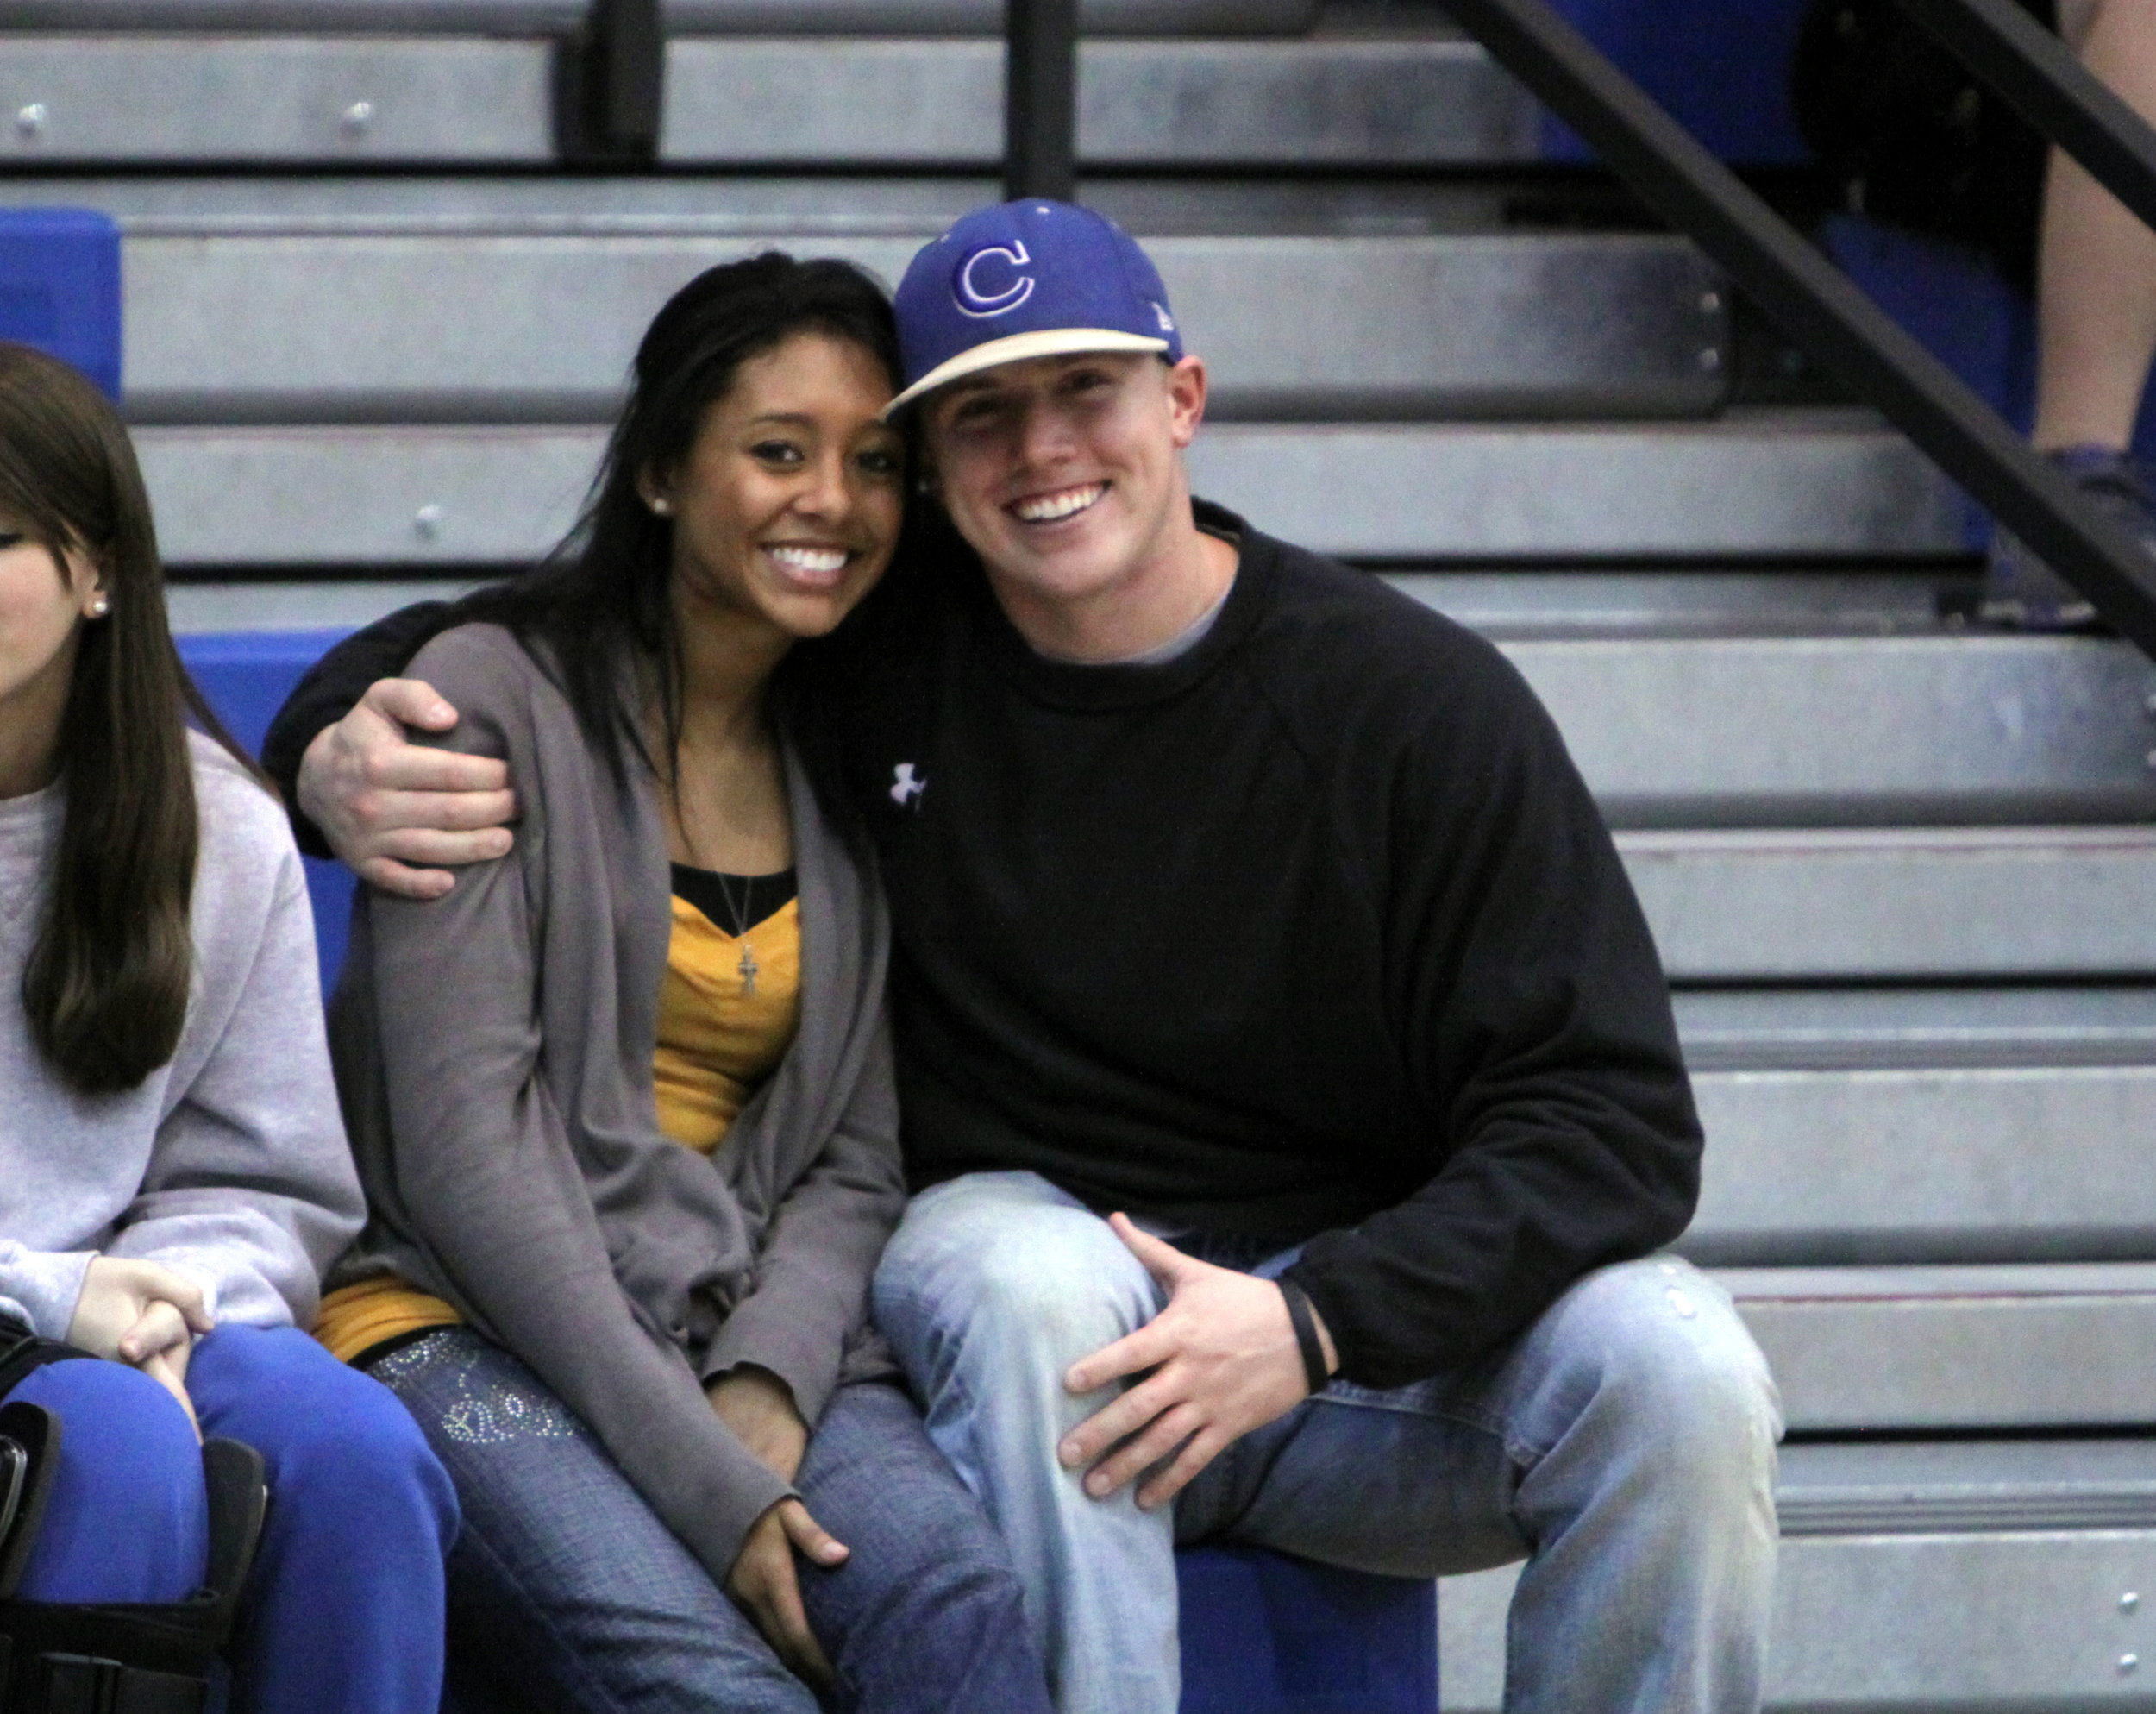 Highschool Rob and Britt. Literal BABIES. Look at those bedazzled jeans...